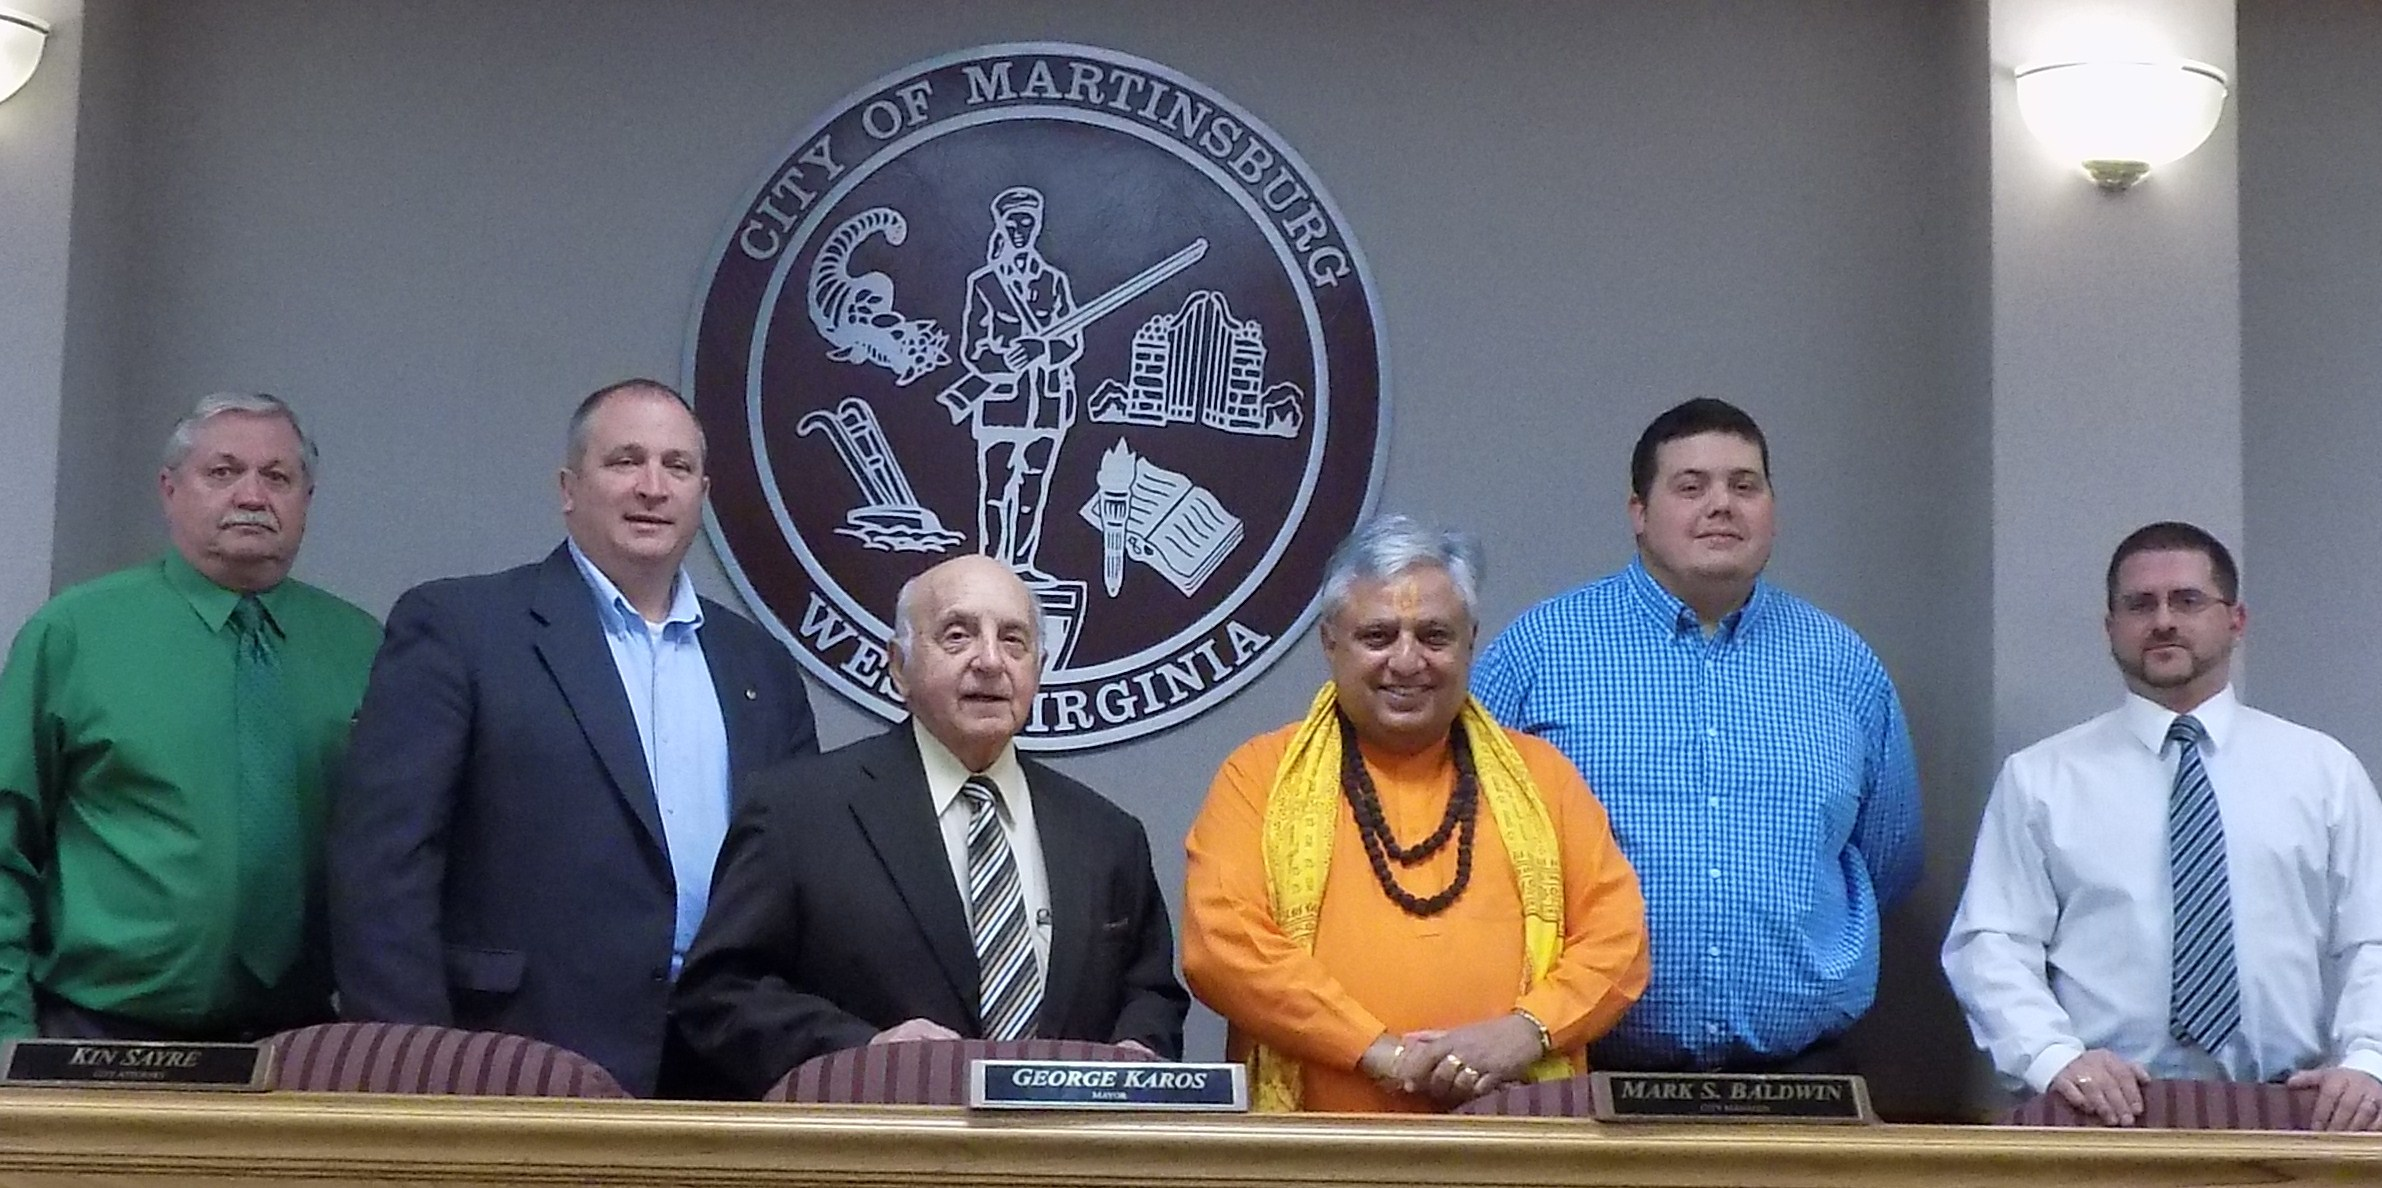 Just before the Martinsburg City Council Hindu invocation; Hindu statesman Rajan Zed (third from right) with Martinsburg Mayor George Karos (fourth from right) and other councilmembers.